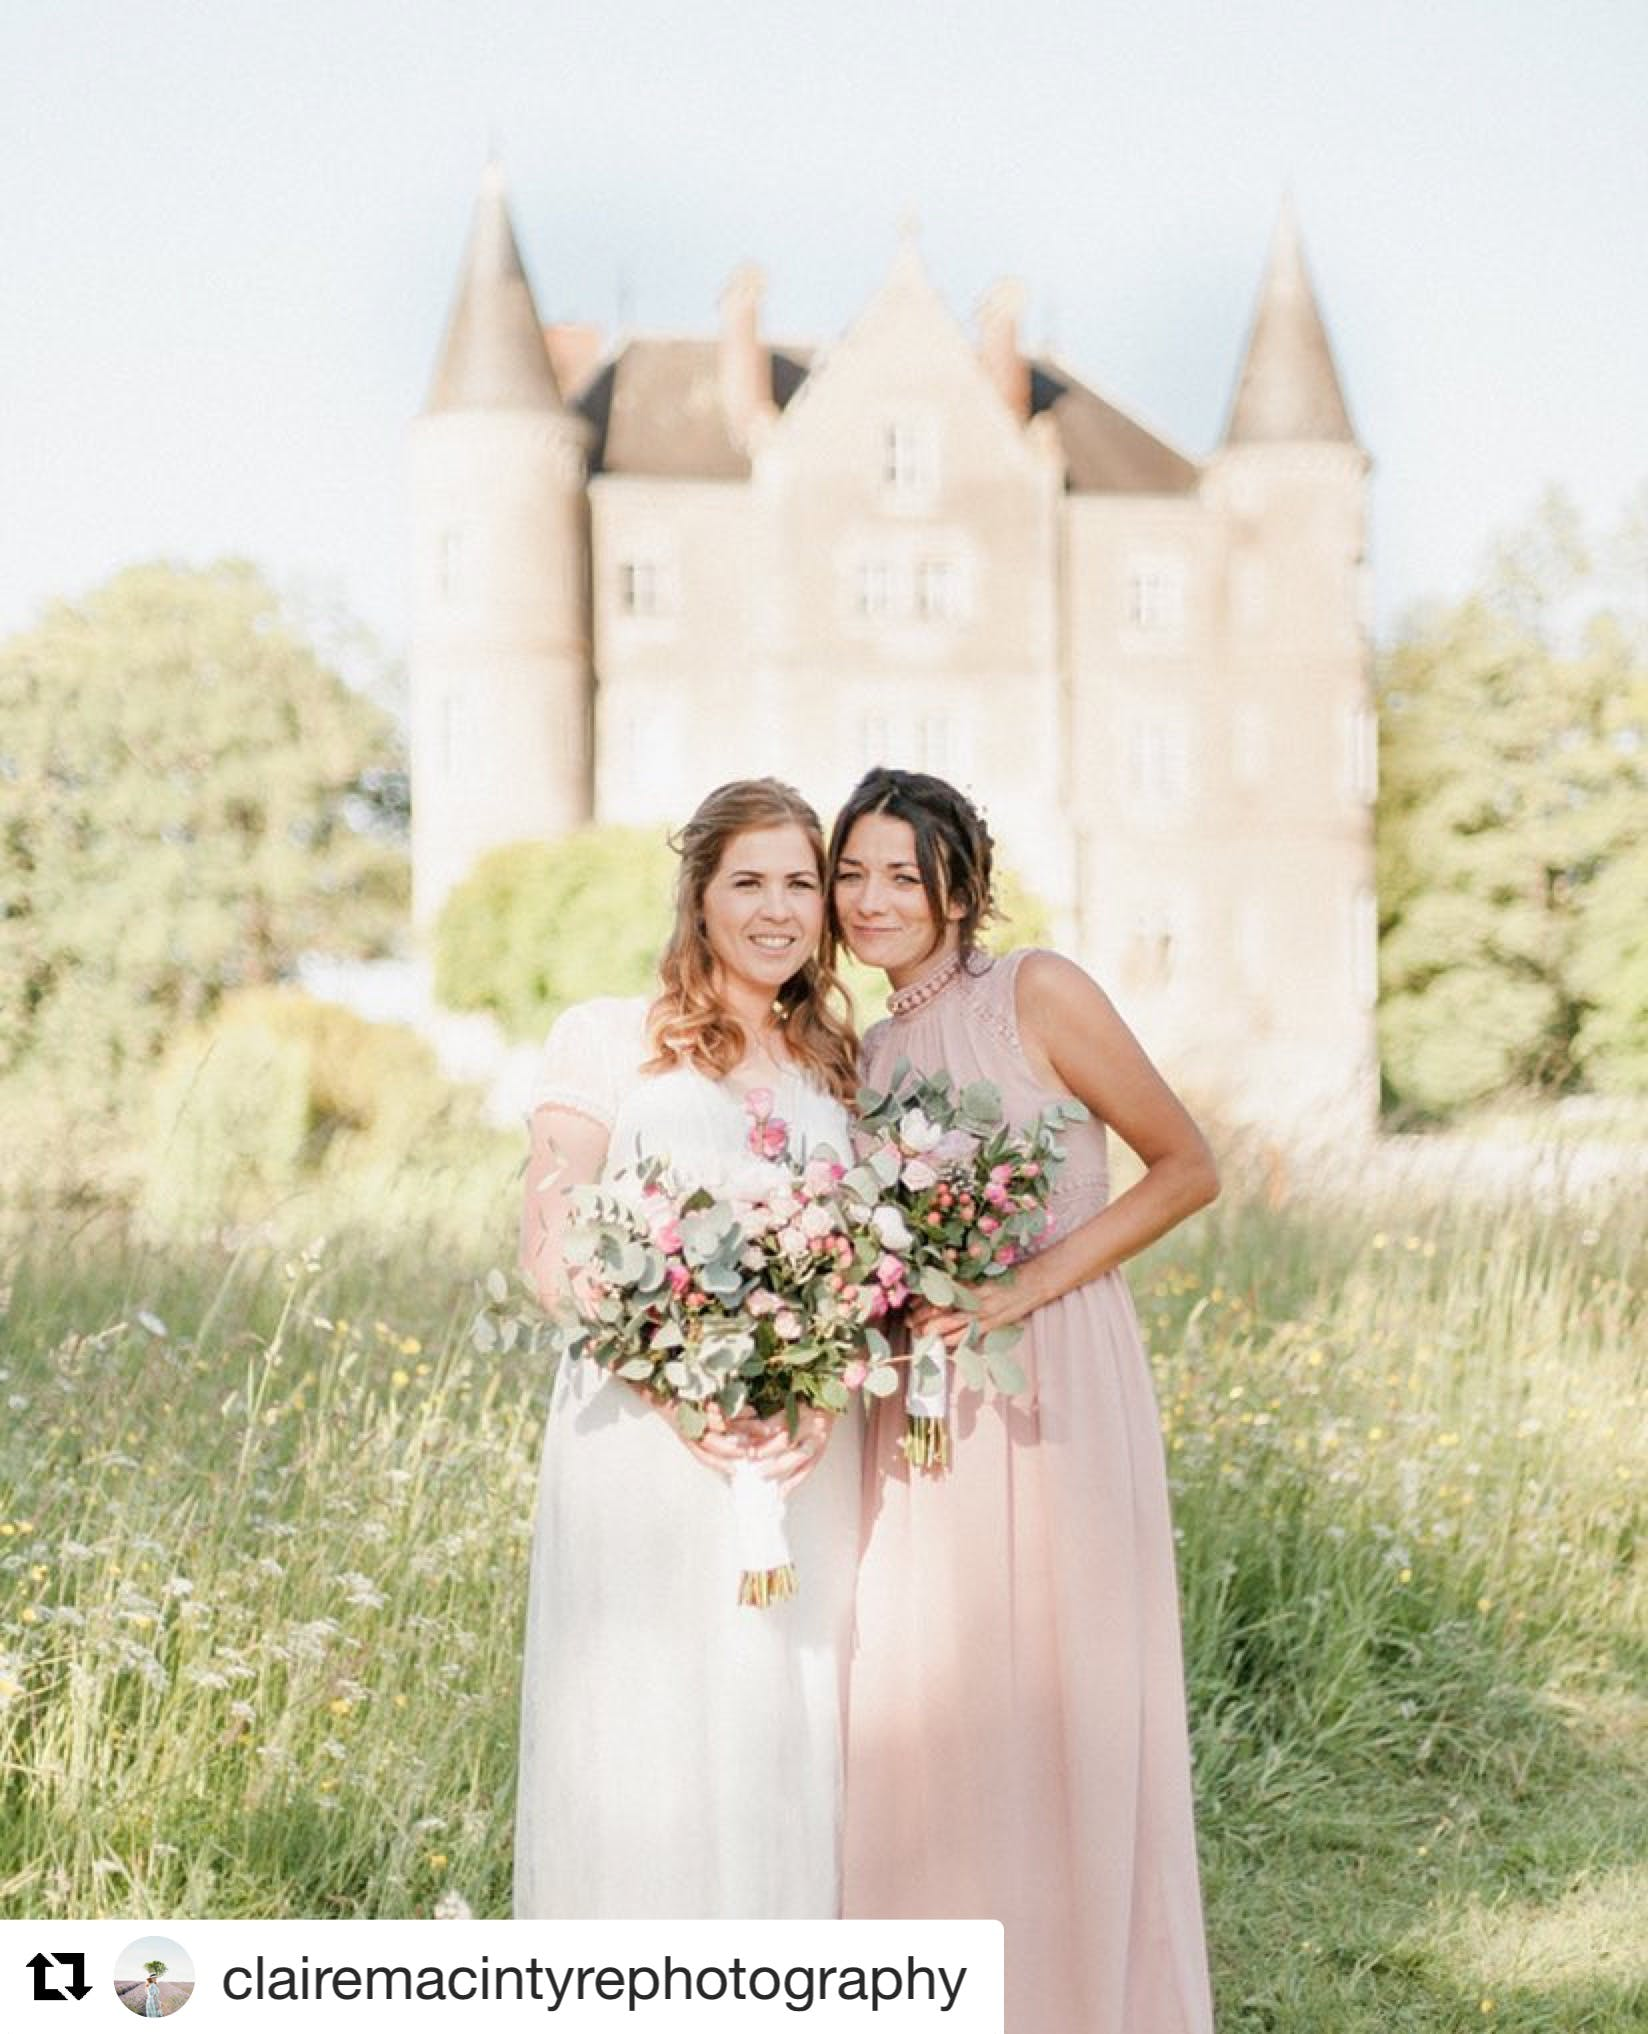 Escape to the Chateau! Stunning Jade got married at the incredible setting of TV series Escape to the Chateau - Chateau de la Motte Husson